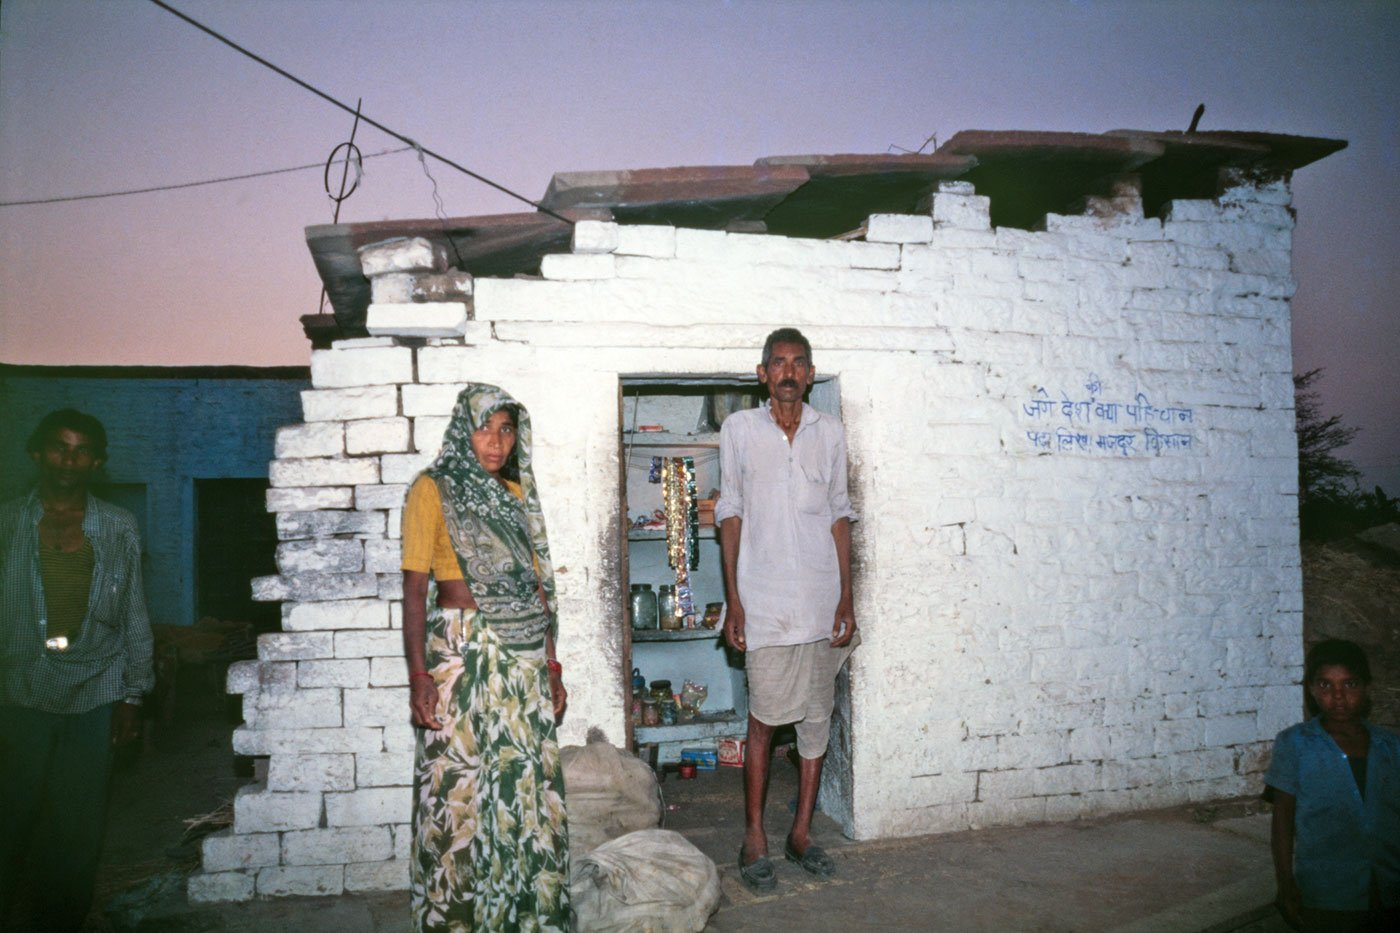 Mangi Lai Jatav and his wife in Naksoda village in Dholupur district. A man and a woman standing outside a hut